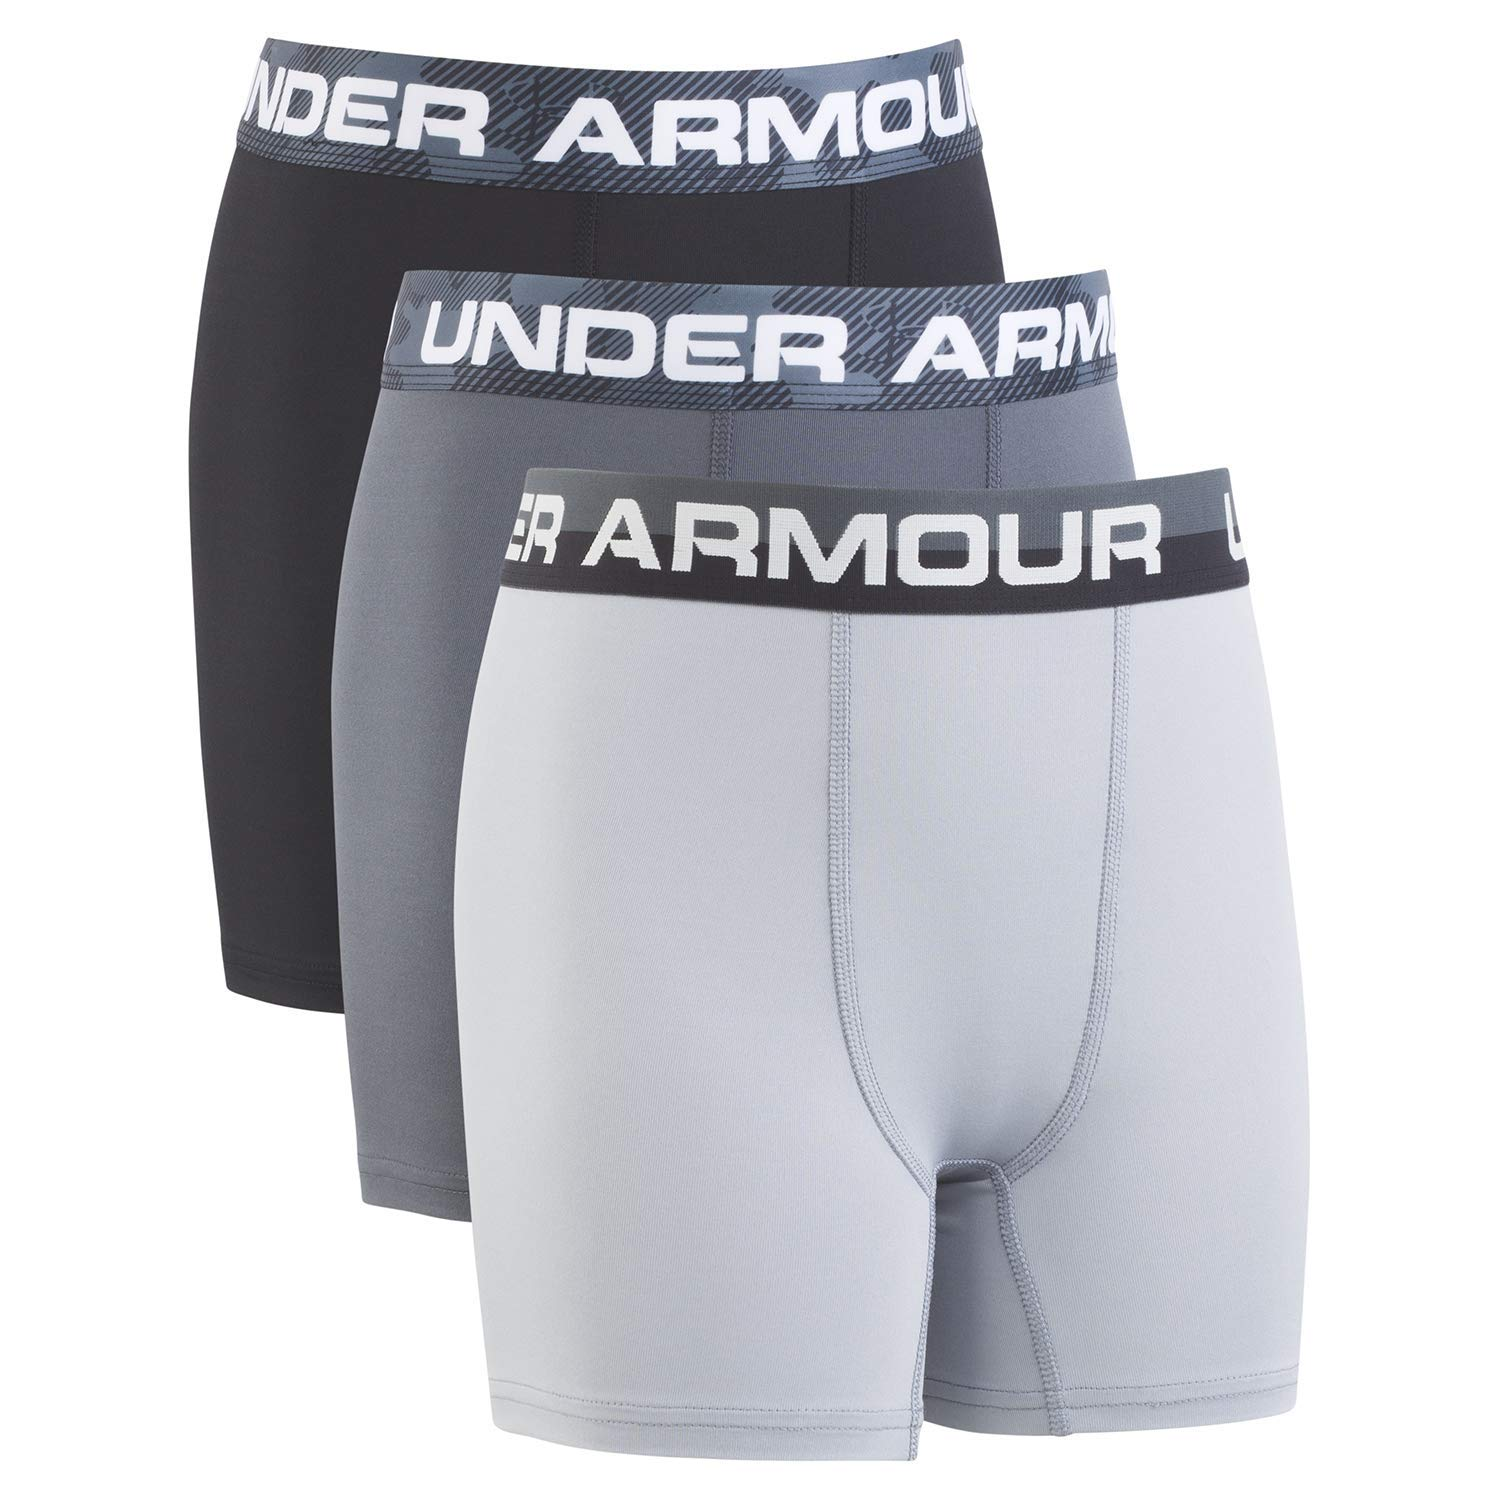 Under Armour Boys' Big 2 Pack Performance Boxer Briefs, Pitch Gray YLG